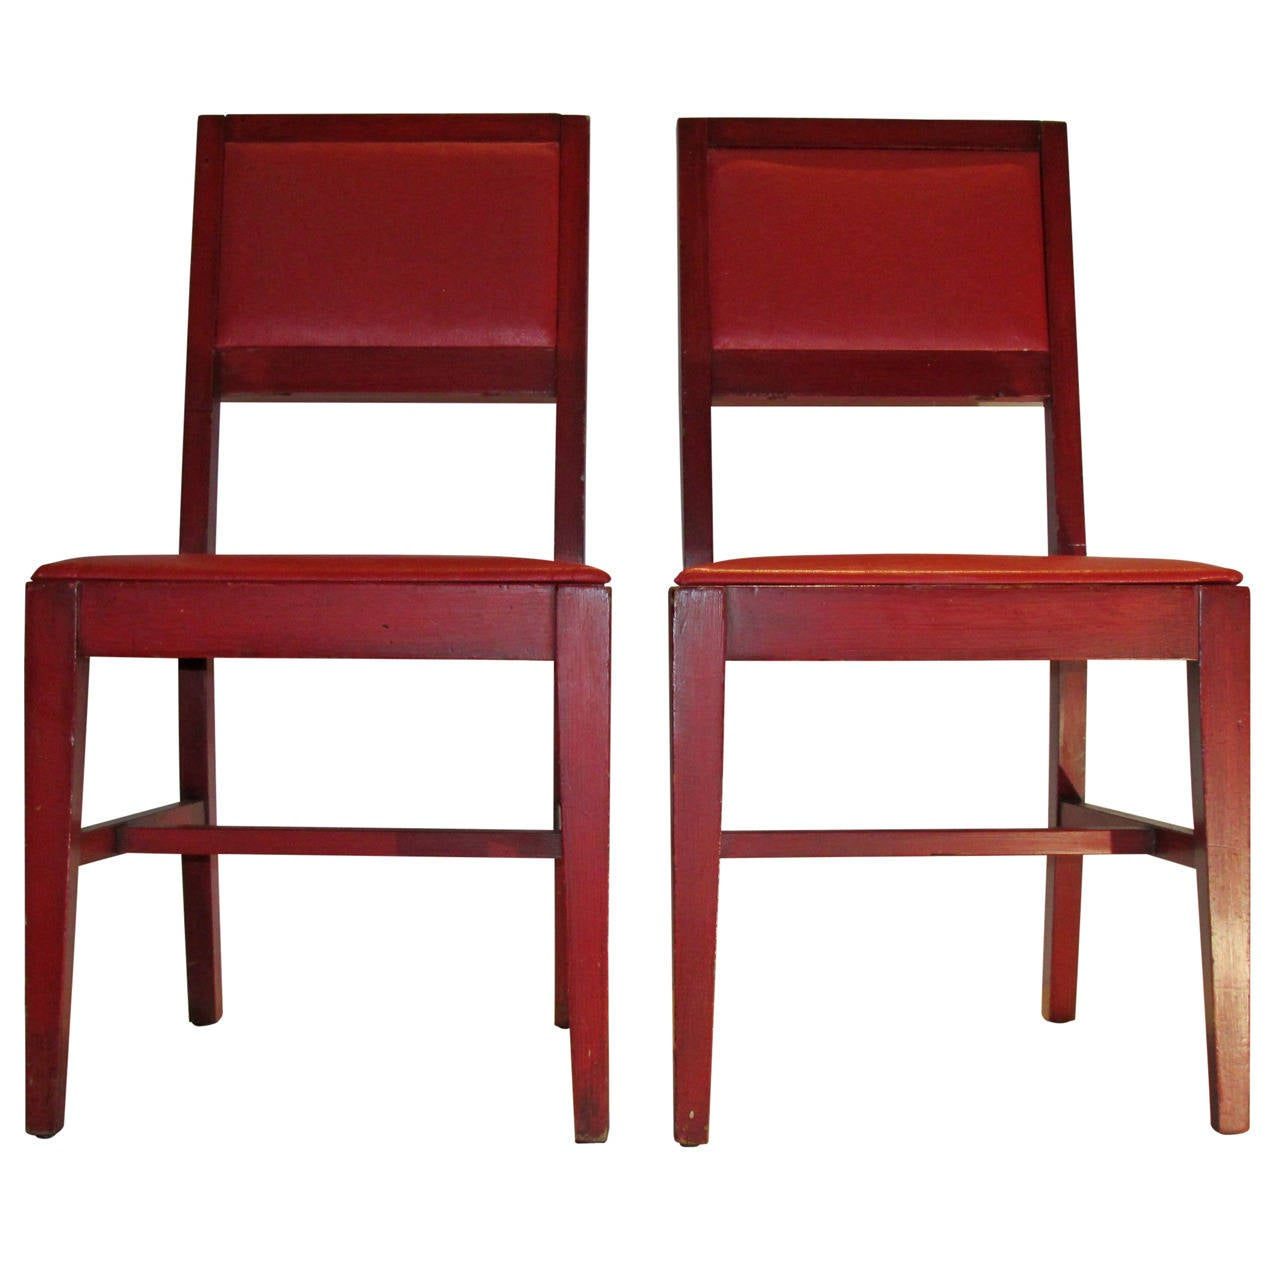 1940 s Modernist Red Chairs from Marshall Fields at 1stdibs